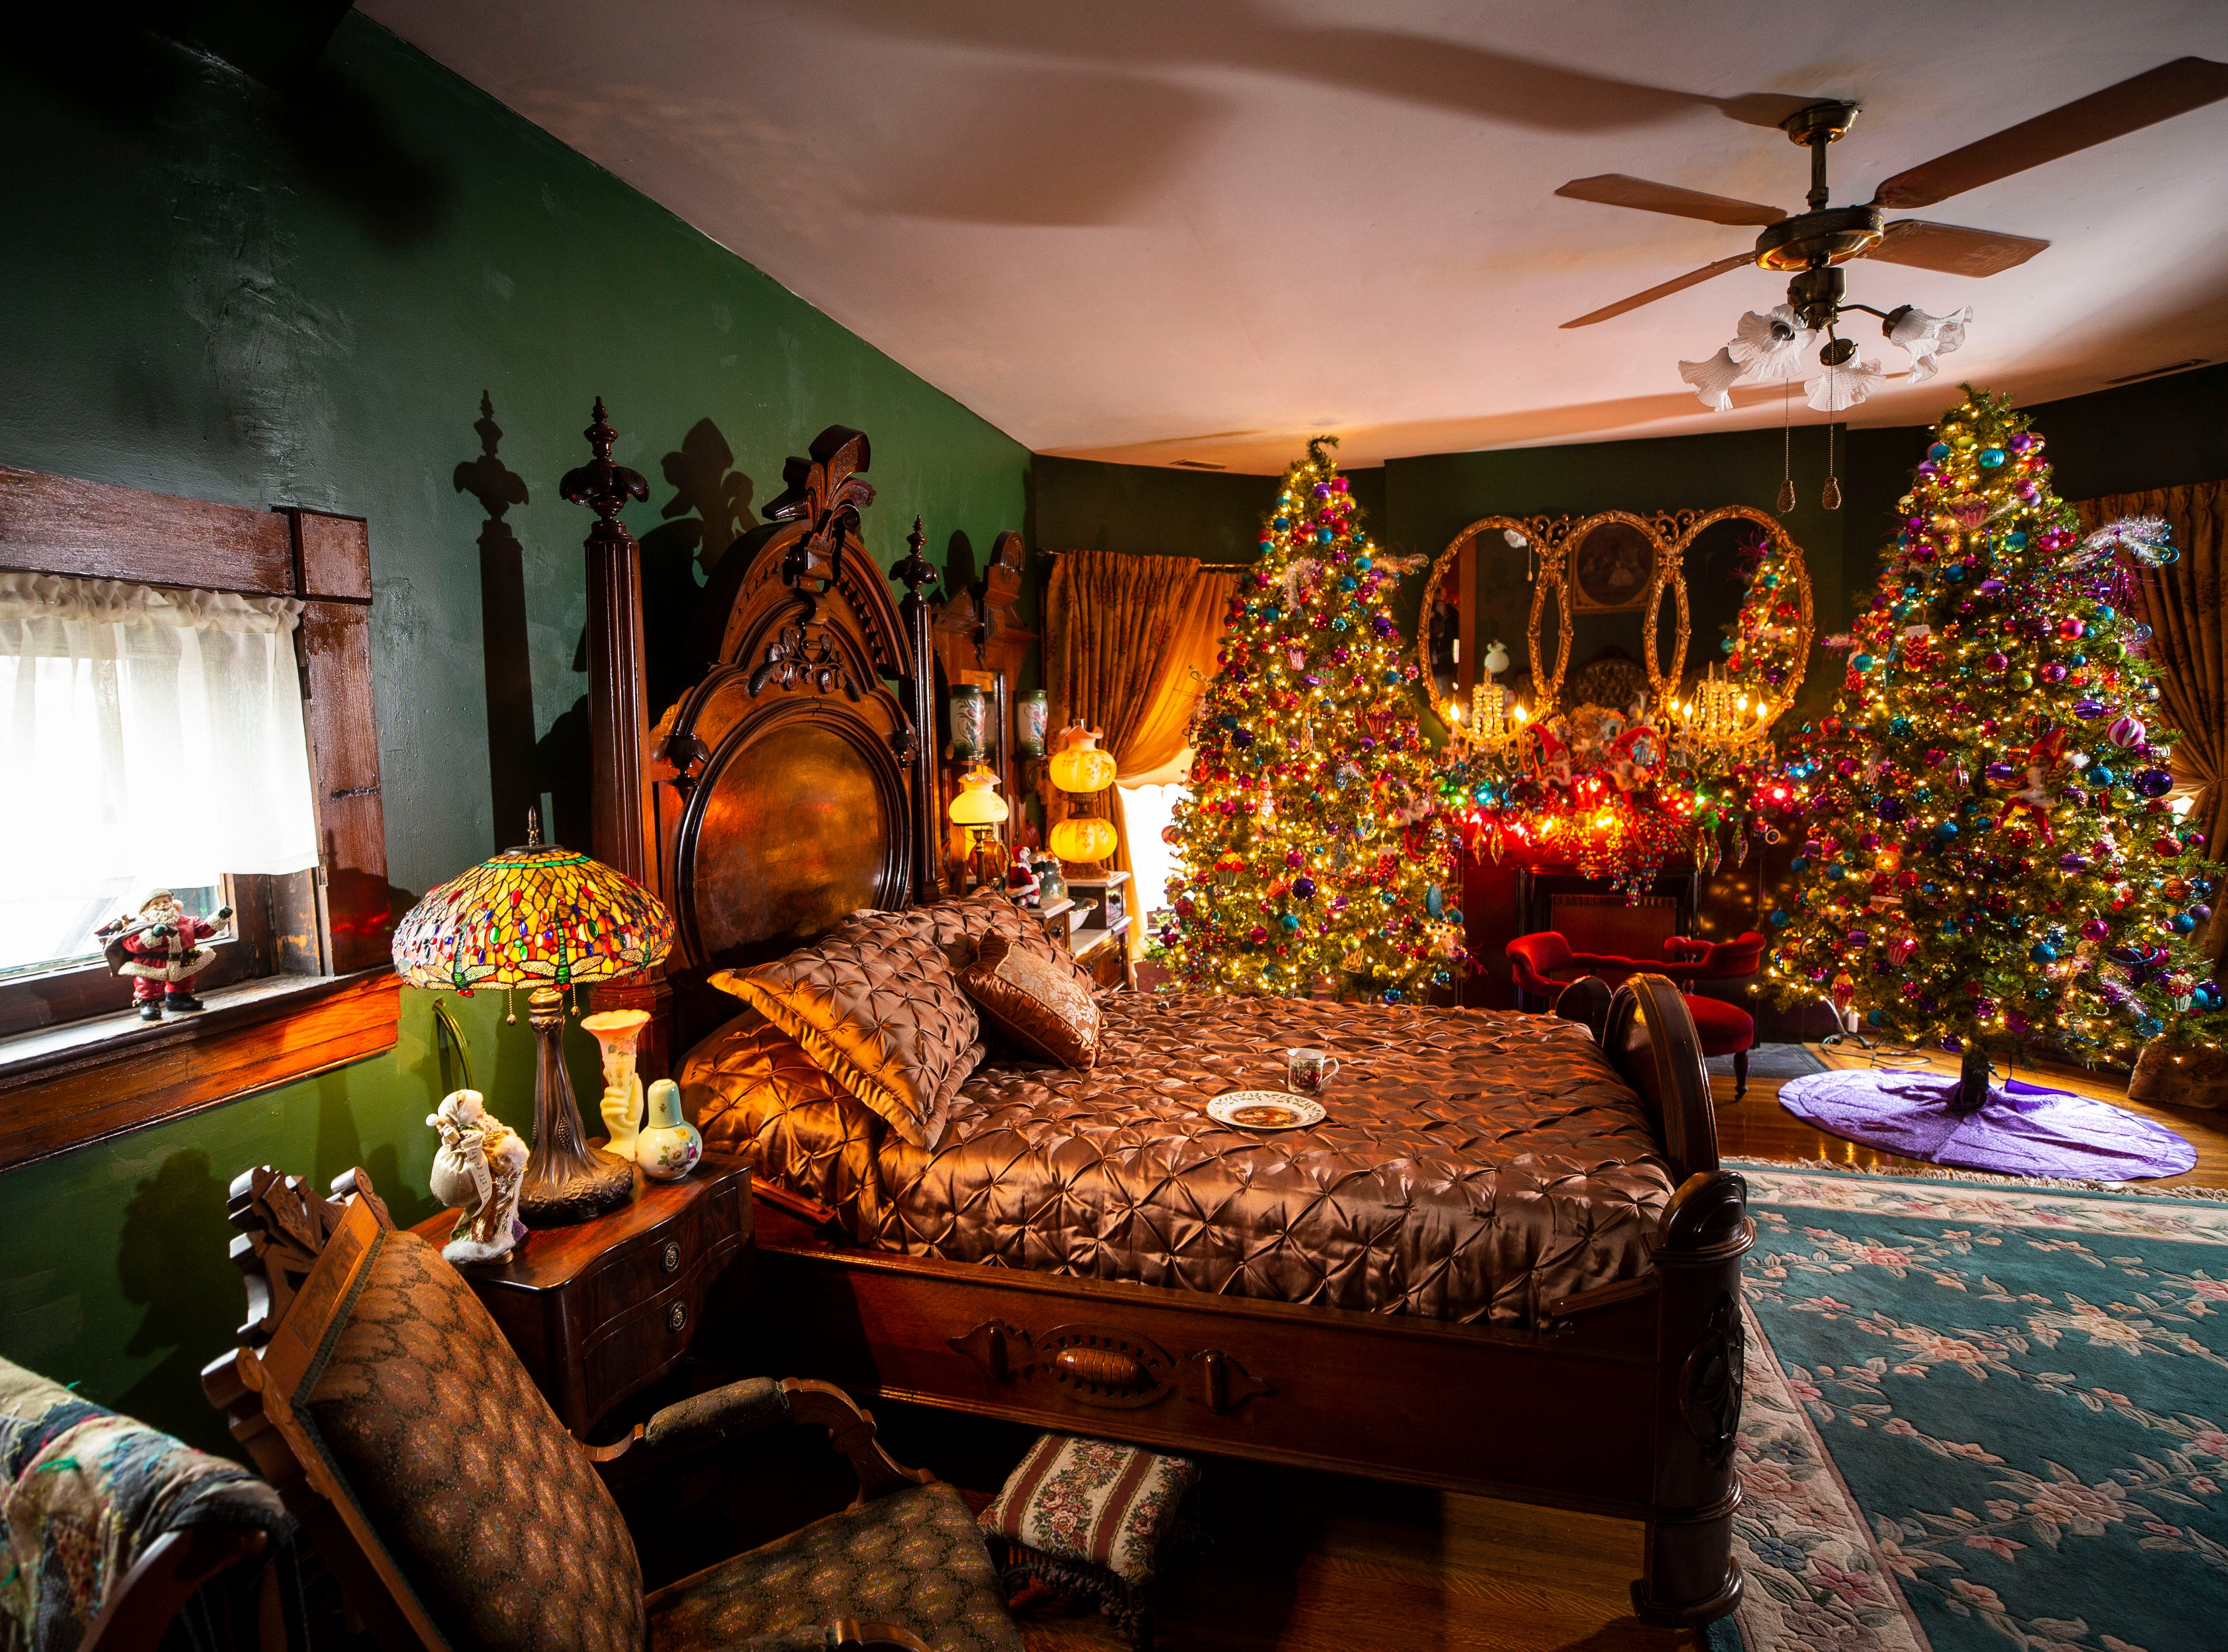 David Brown started decorating in September; he's still putting things together. After the holidays it takes him about two to three weeks to pack away the lights, ornaments and garlands.